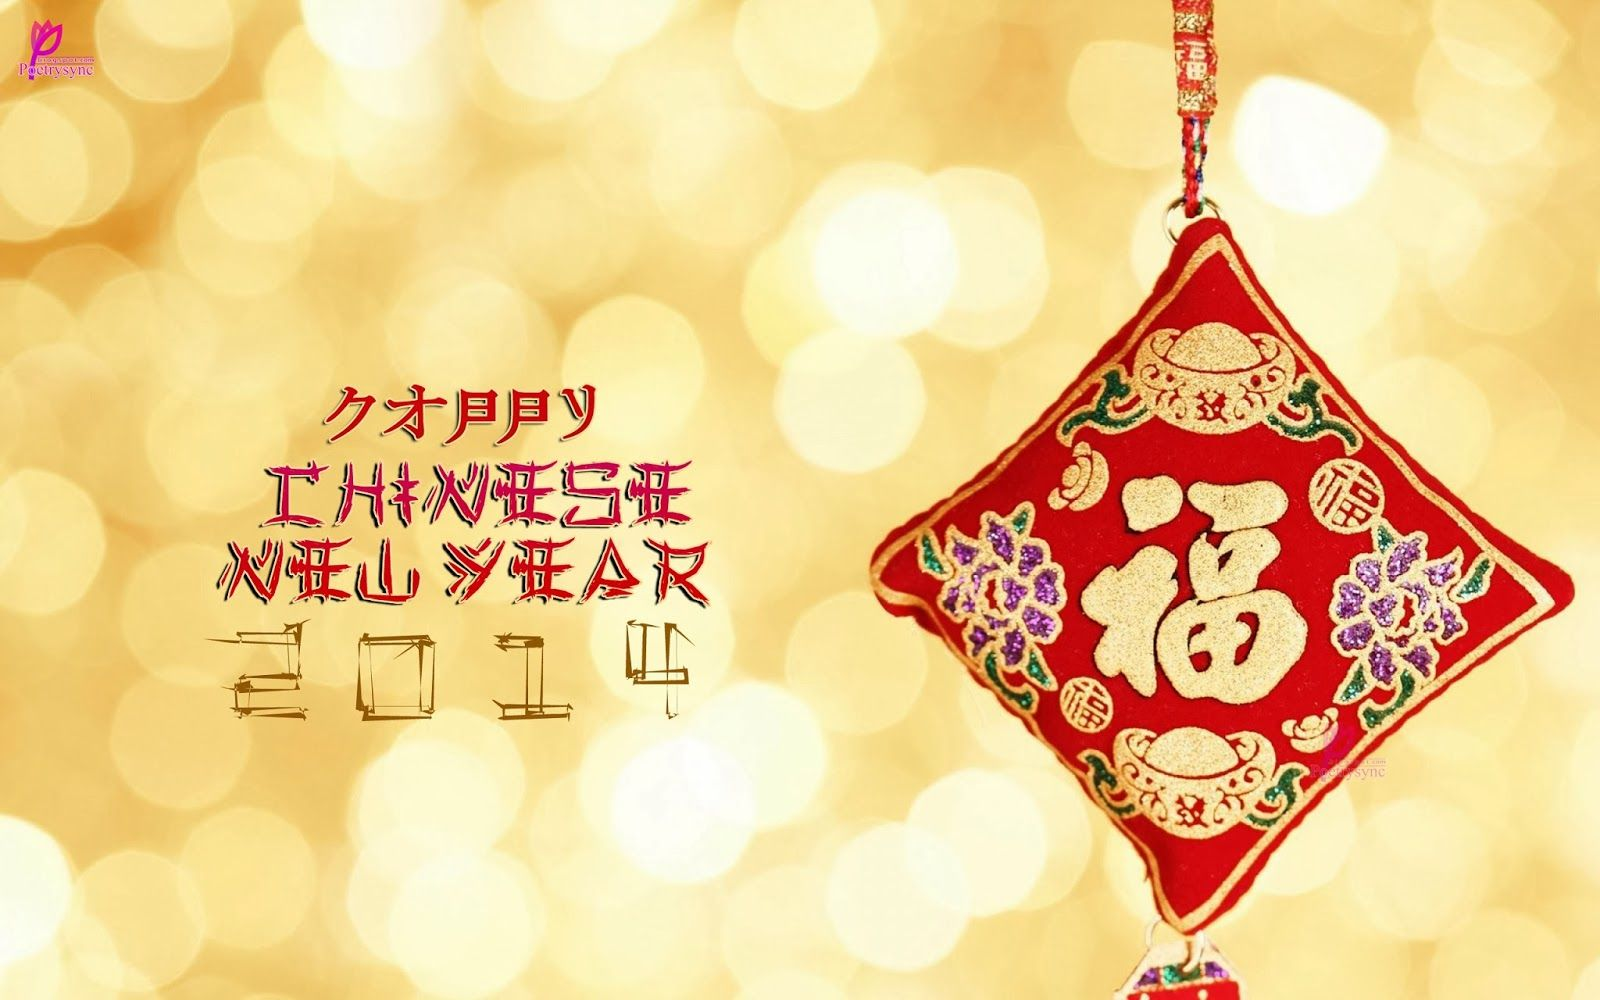 Poetry Chinese New Year Wishes Messages With Pictures Chinese New Year Wallpaper Chinese New Year Wishes New Year Wishes Images